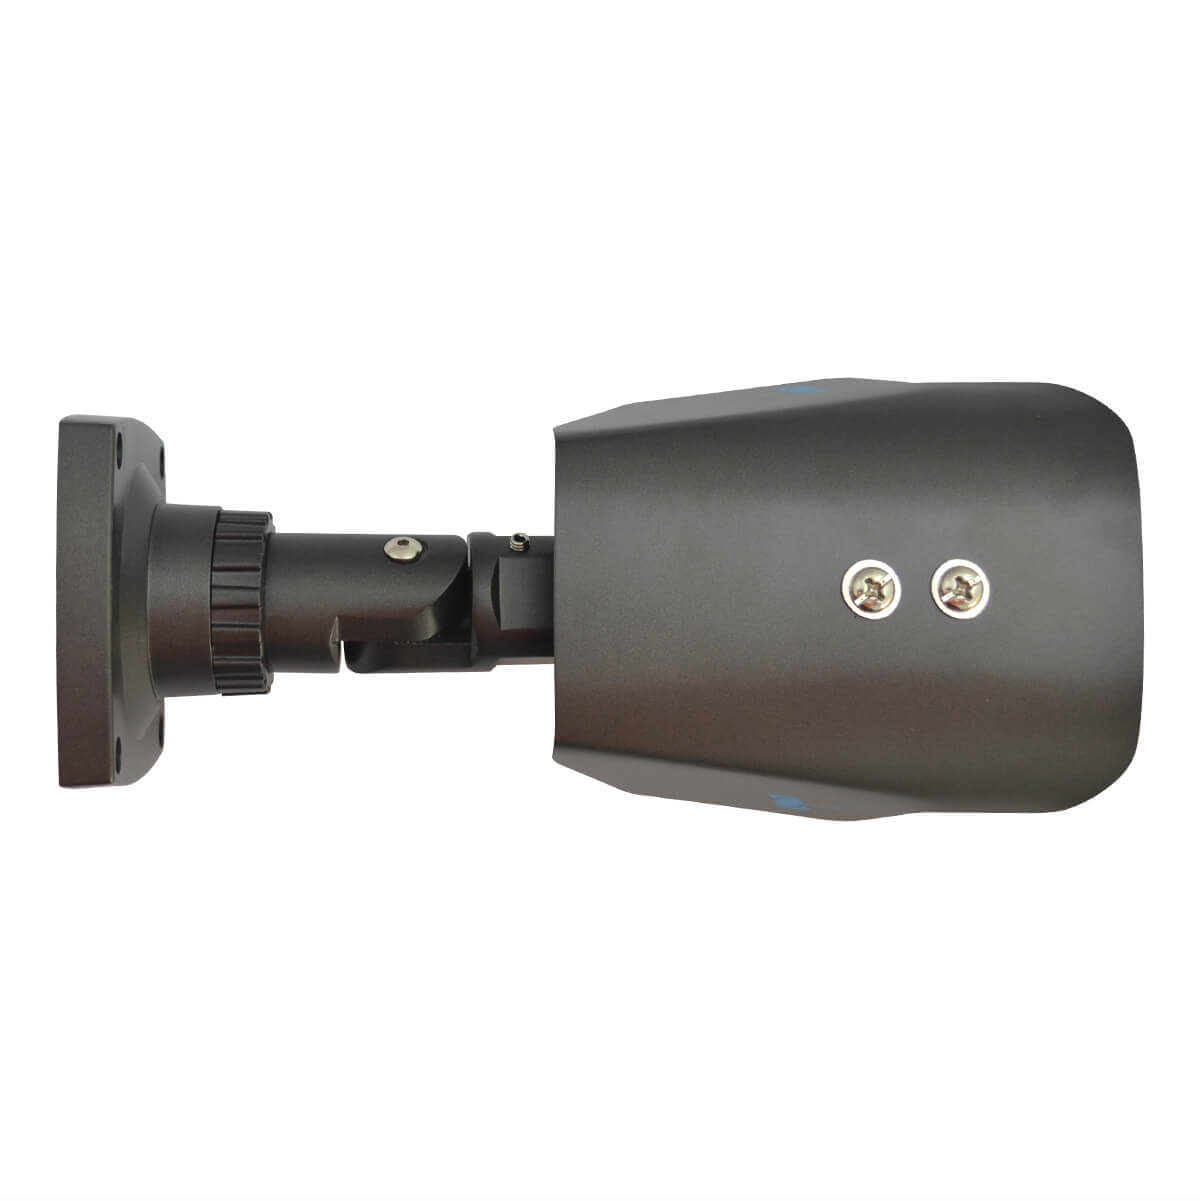 Camara Bazuca, 1/3 SONY CCD, 700TVL, lente 3.6mm, 36 LED, 30m IR, IP66